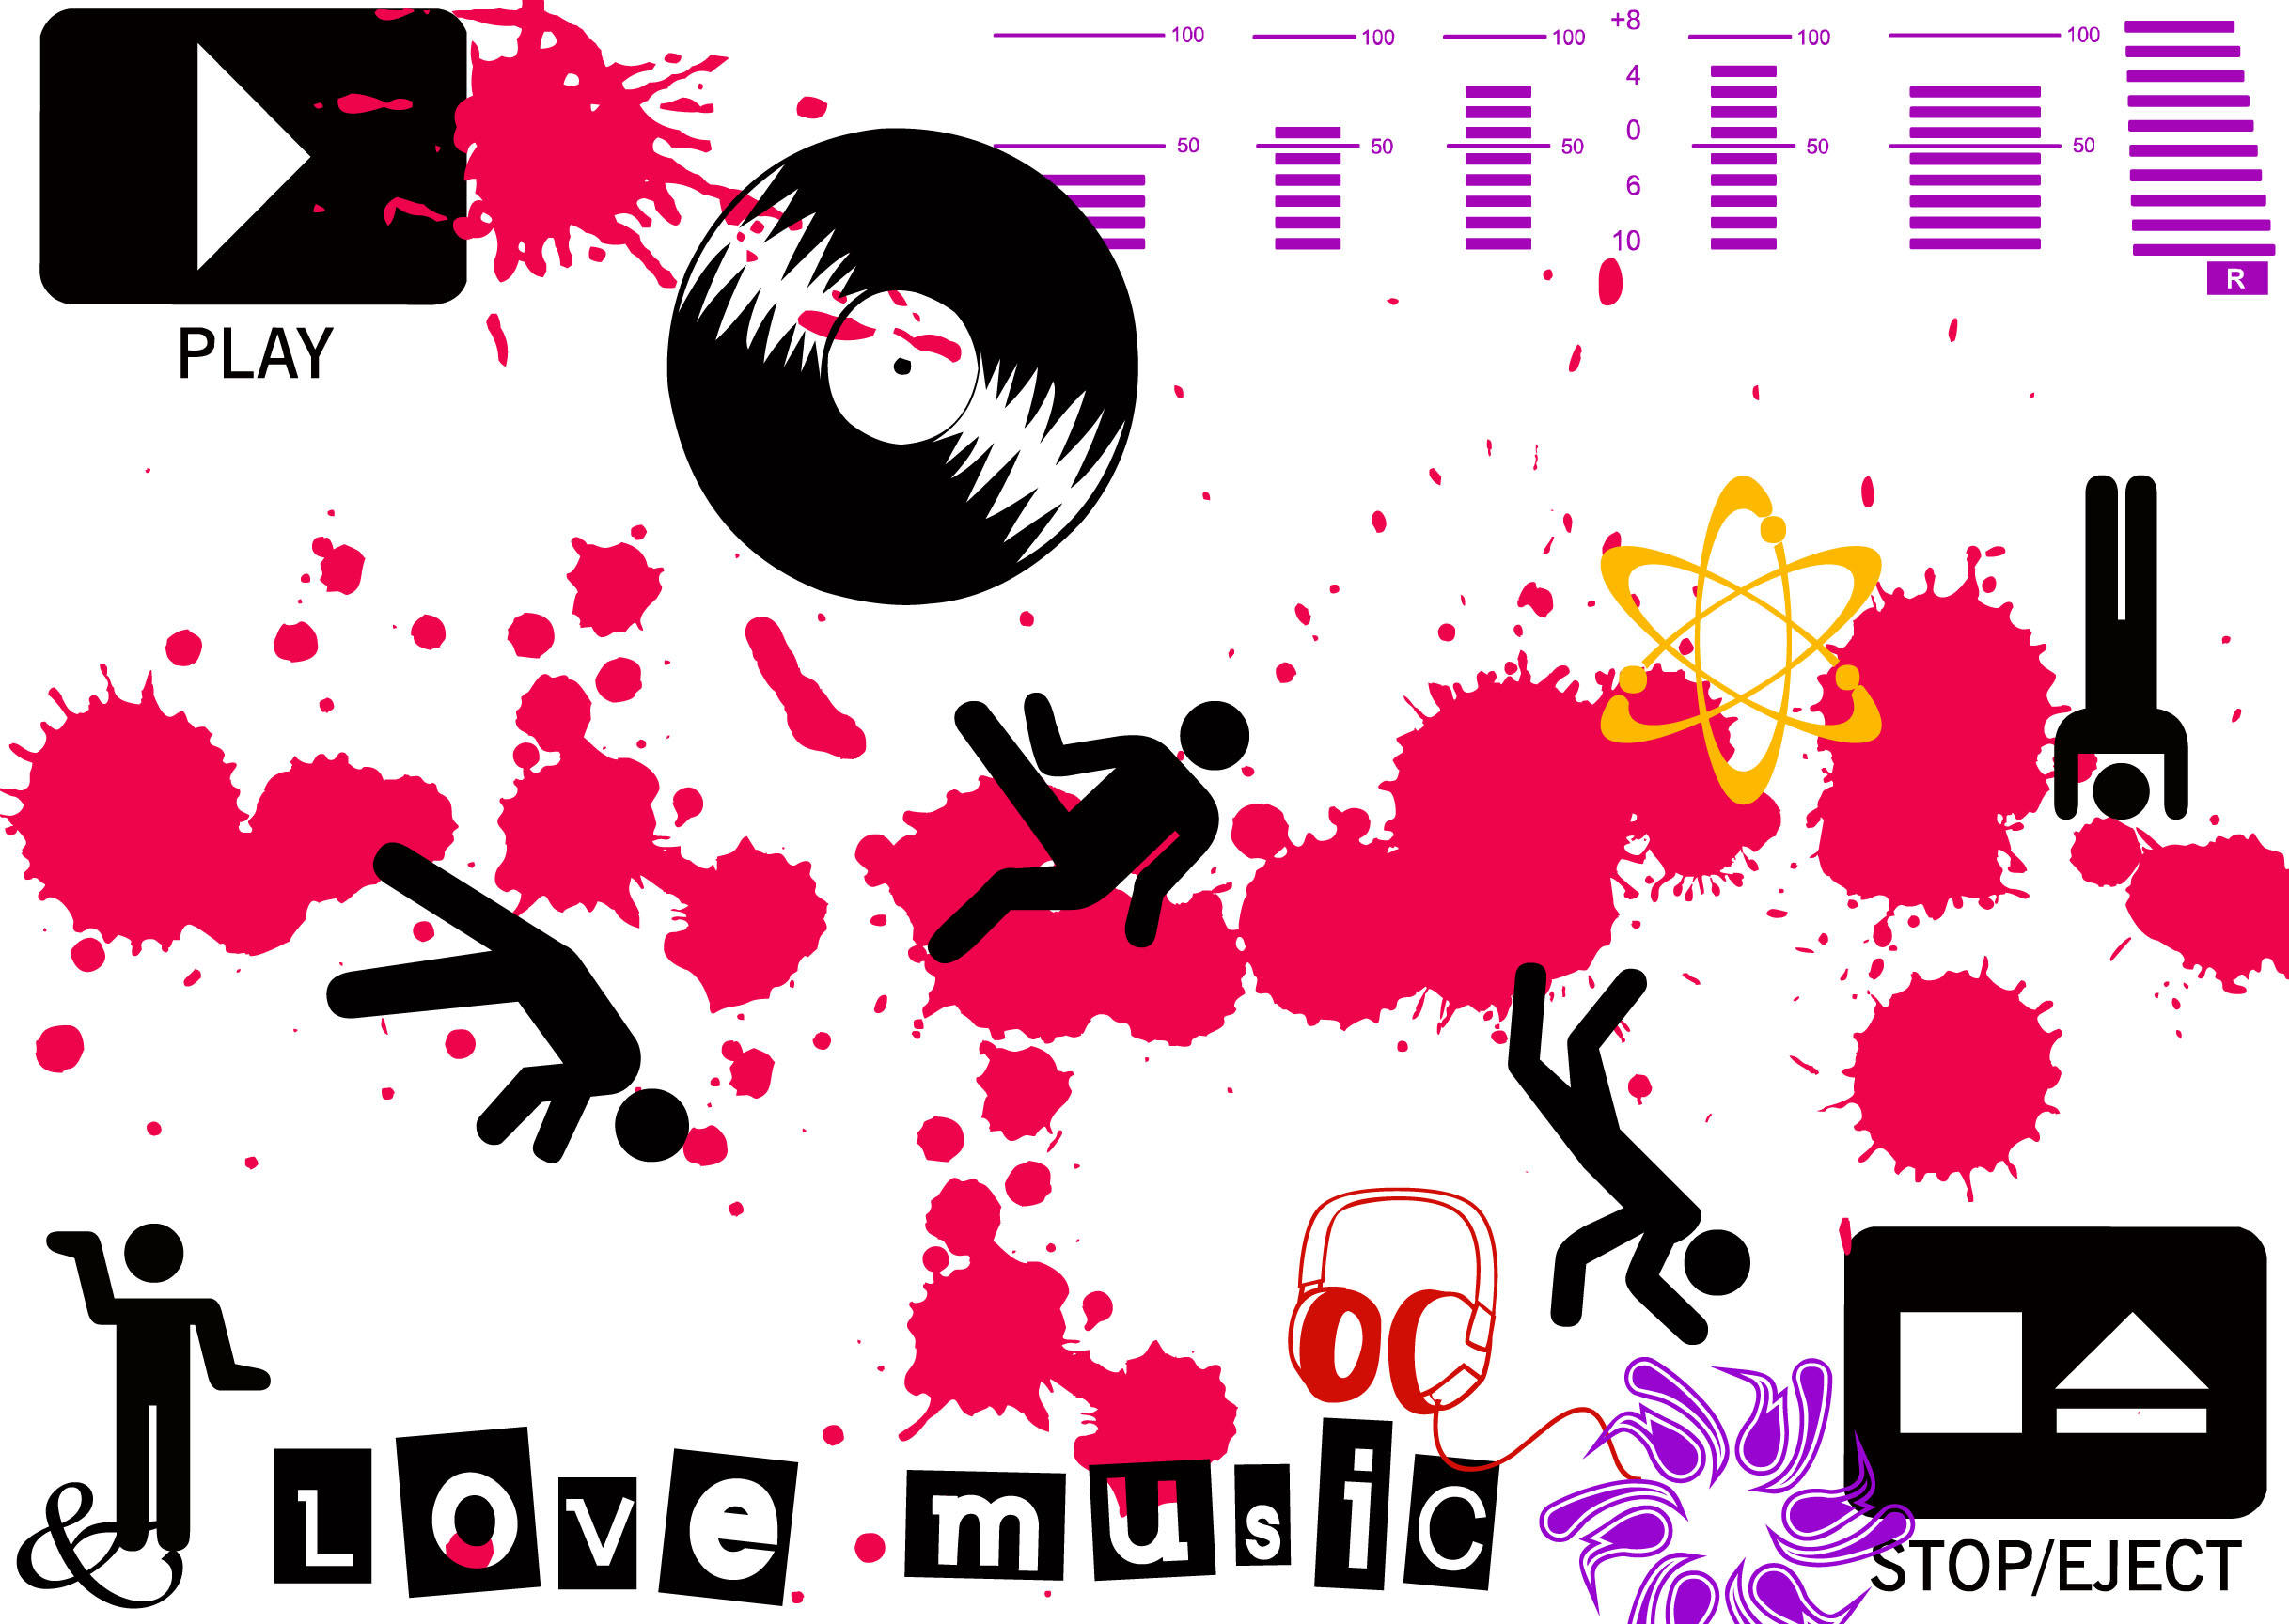 Love music by GirL-PoiSoned on DeviantArt